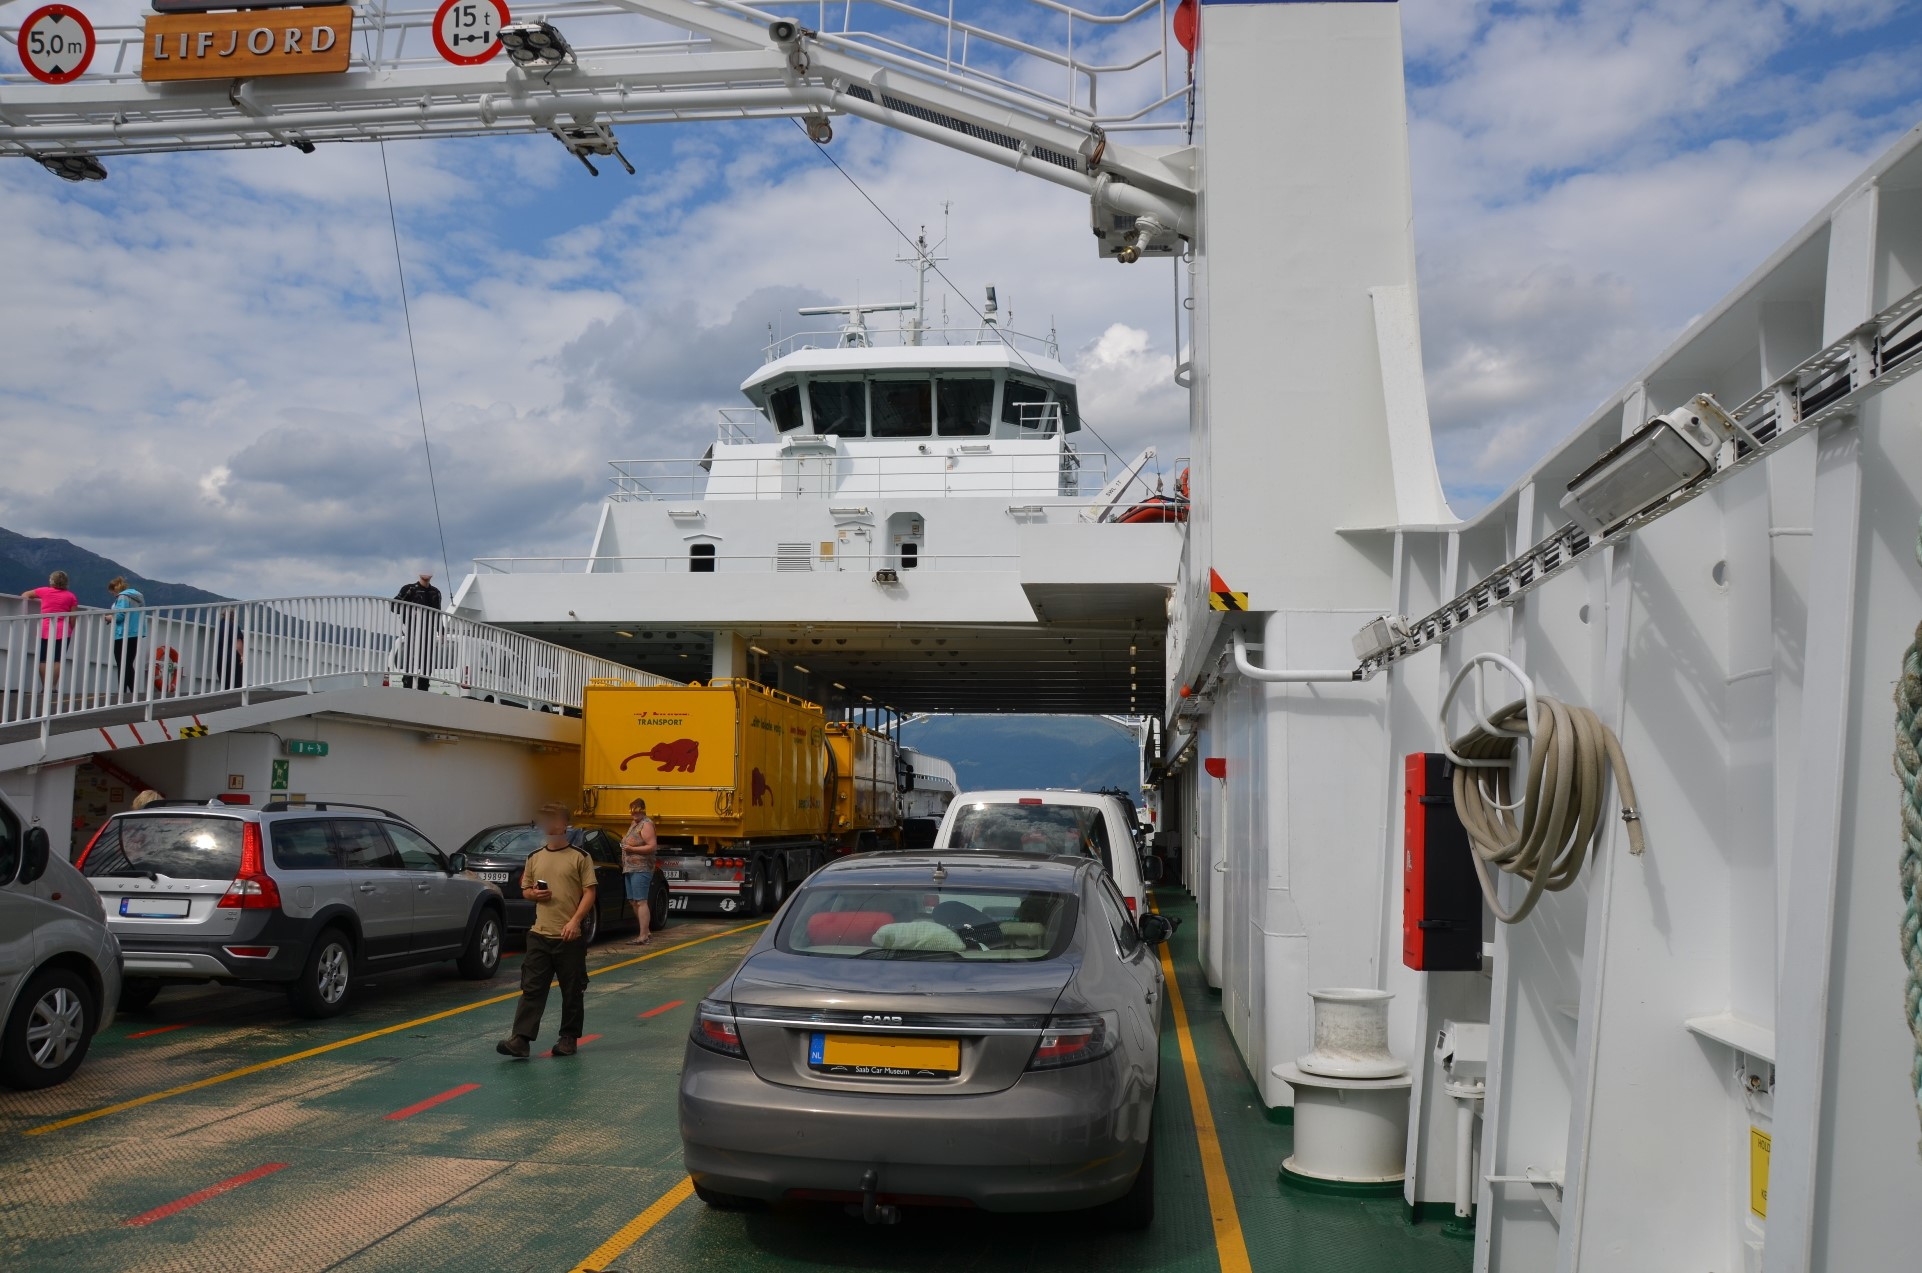 Our SAAB 9-5ng on a ferry in Scandinavia.